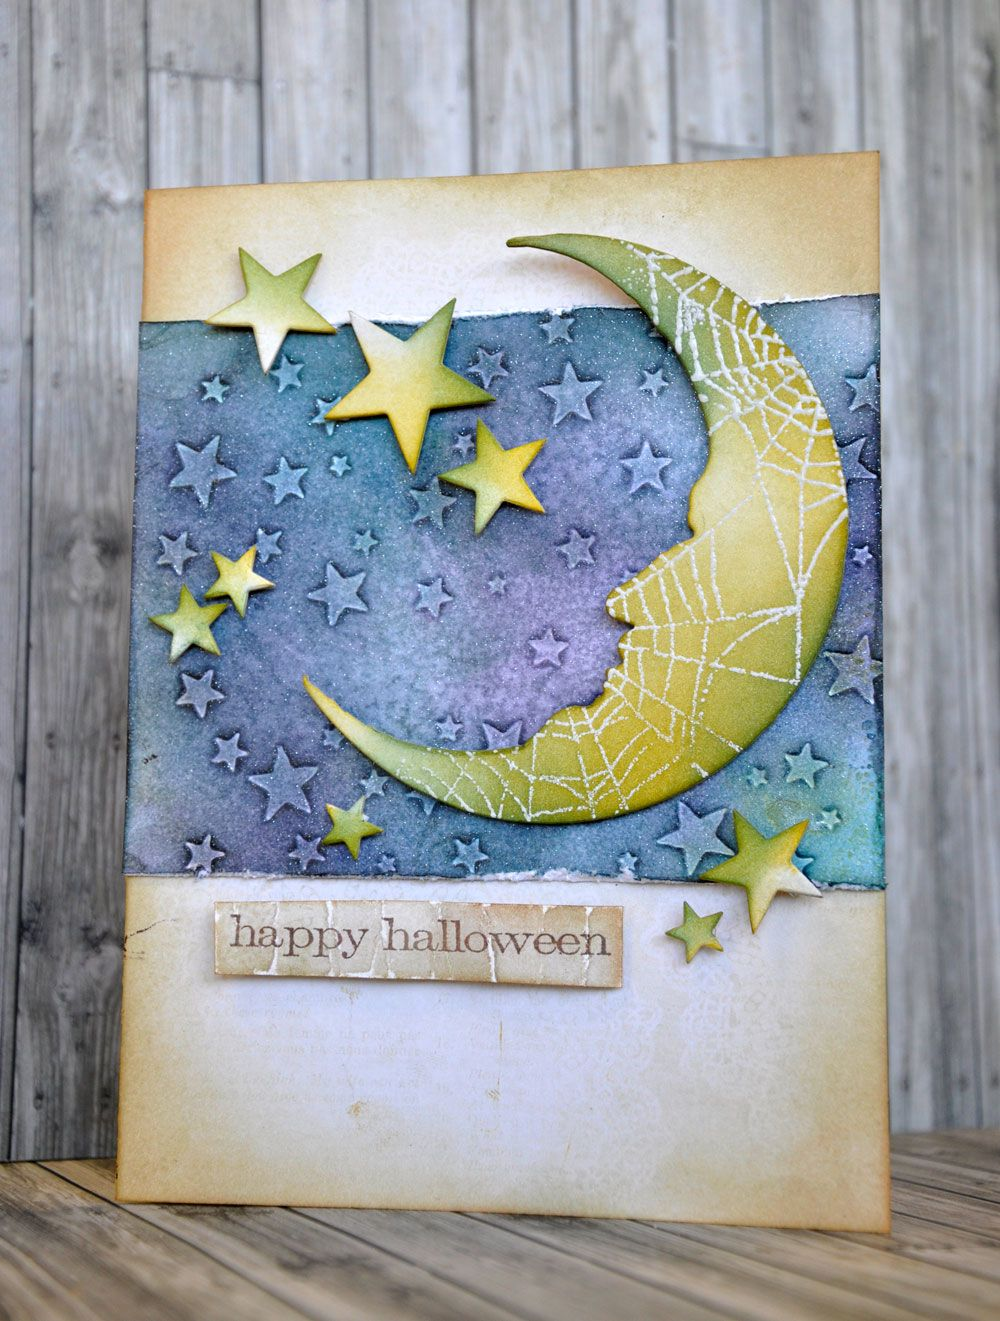 Baby scrapbook ideas uk - Crafting Ideas From Sizzix Uk Fright Night I Just Saw This New Sizzix Die On A Cherry On Top Yesterday It Would Be Really Cute On A Baby Card Tag Too